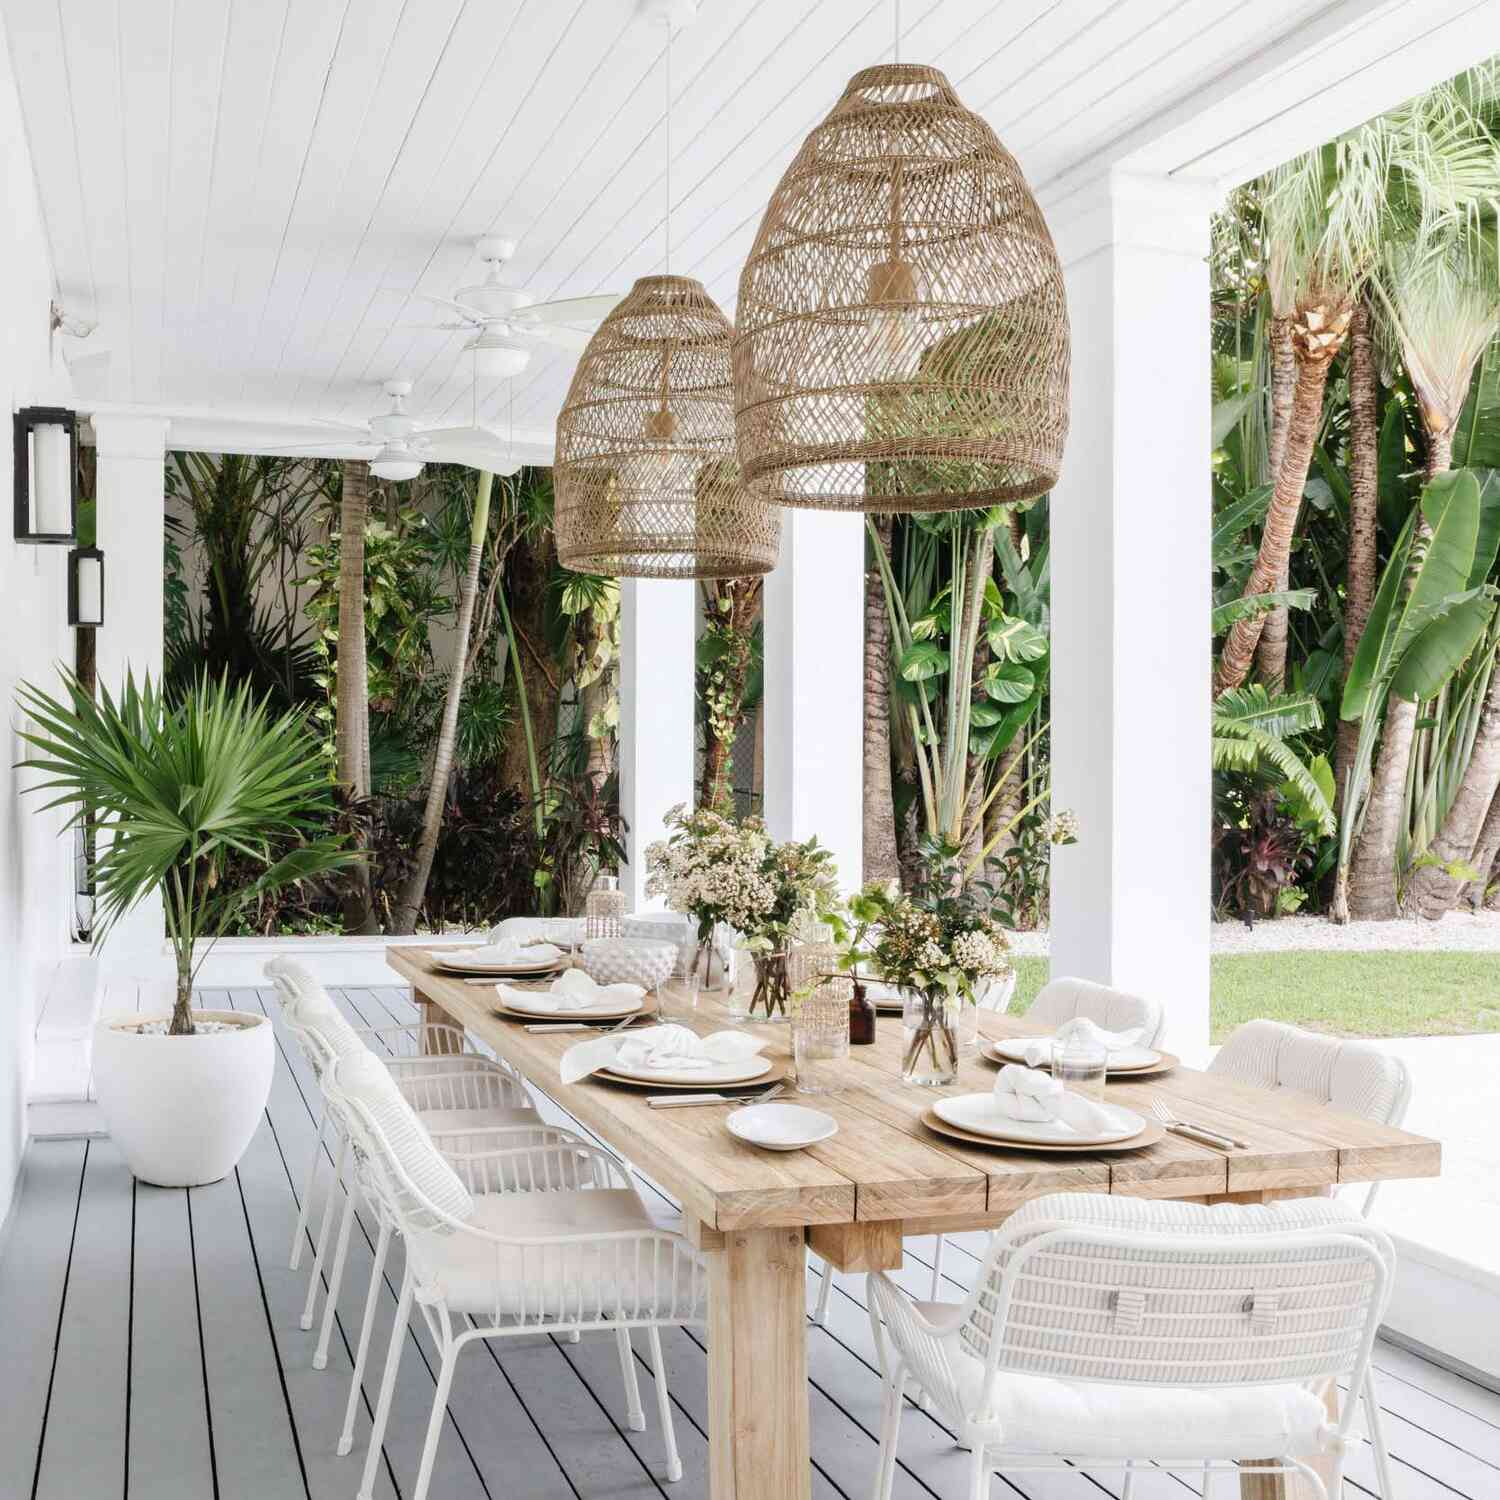 An outdoor dining room with white chairs and two woven pendant lights